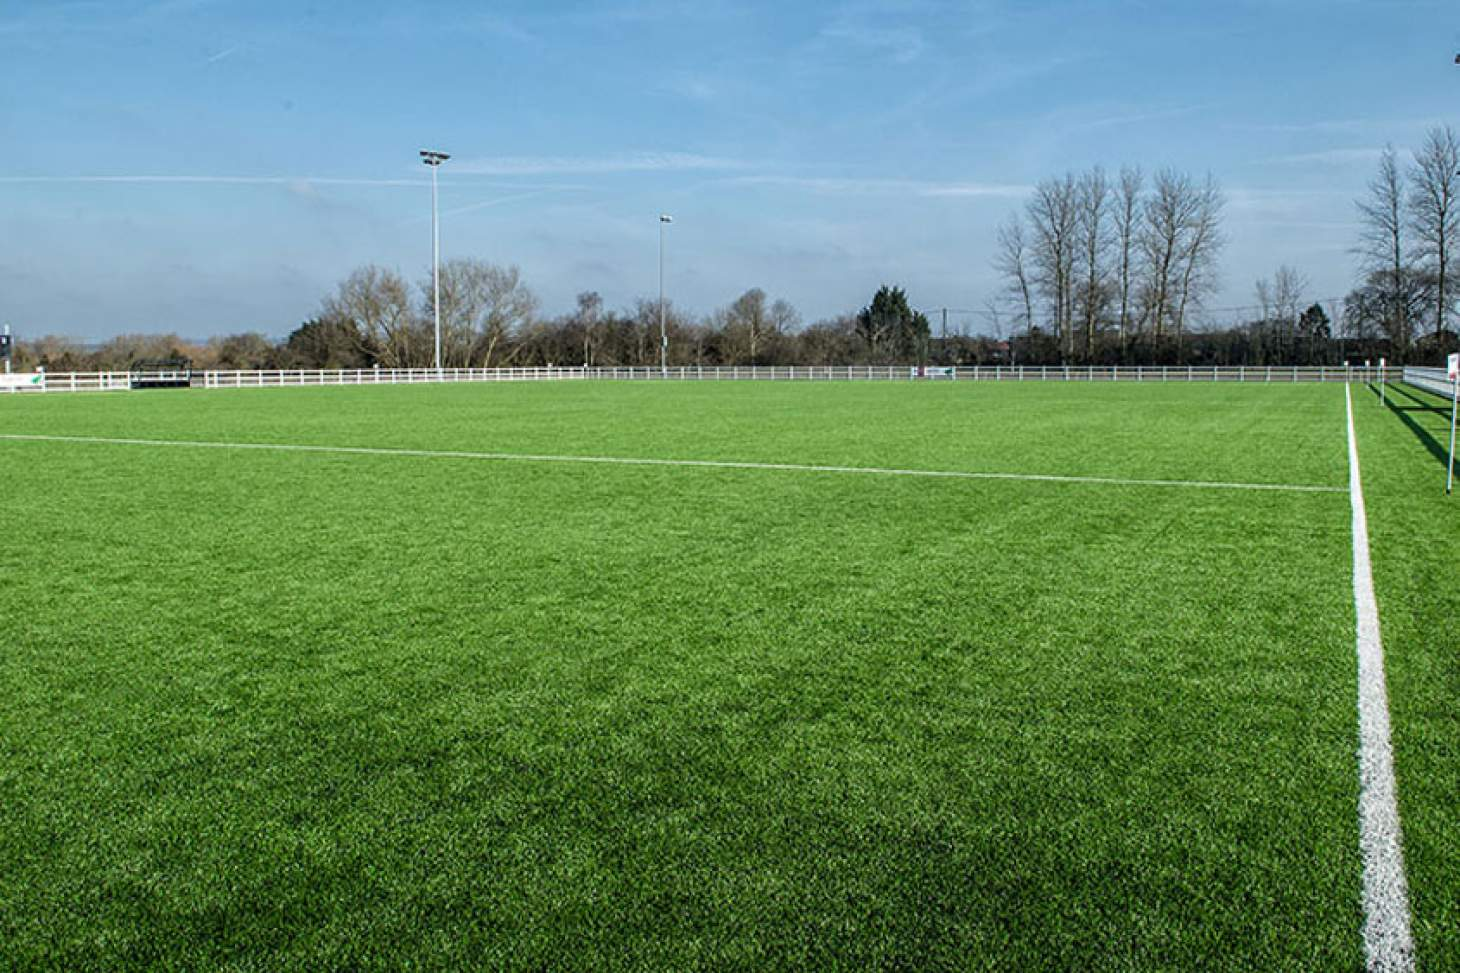 PlayFootball Keighley 5 a side   3G Astroturf football pitch